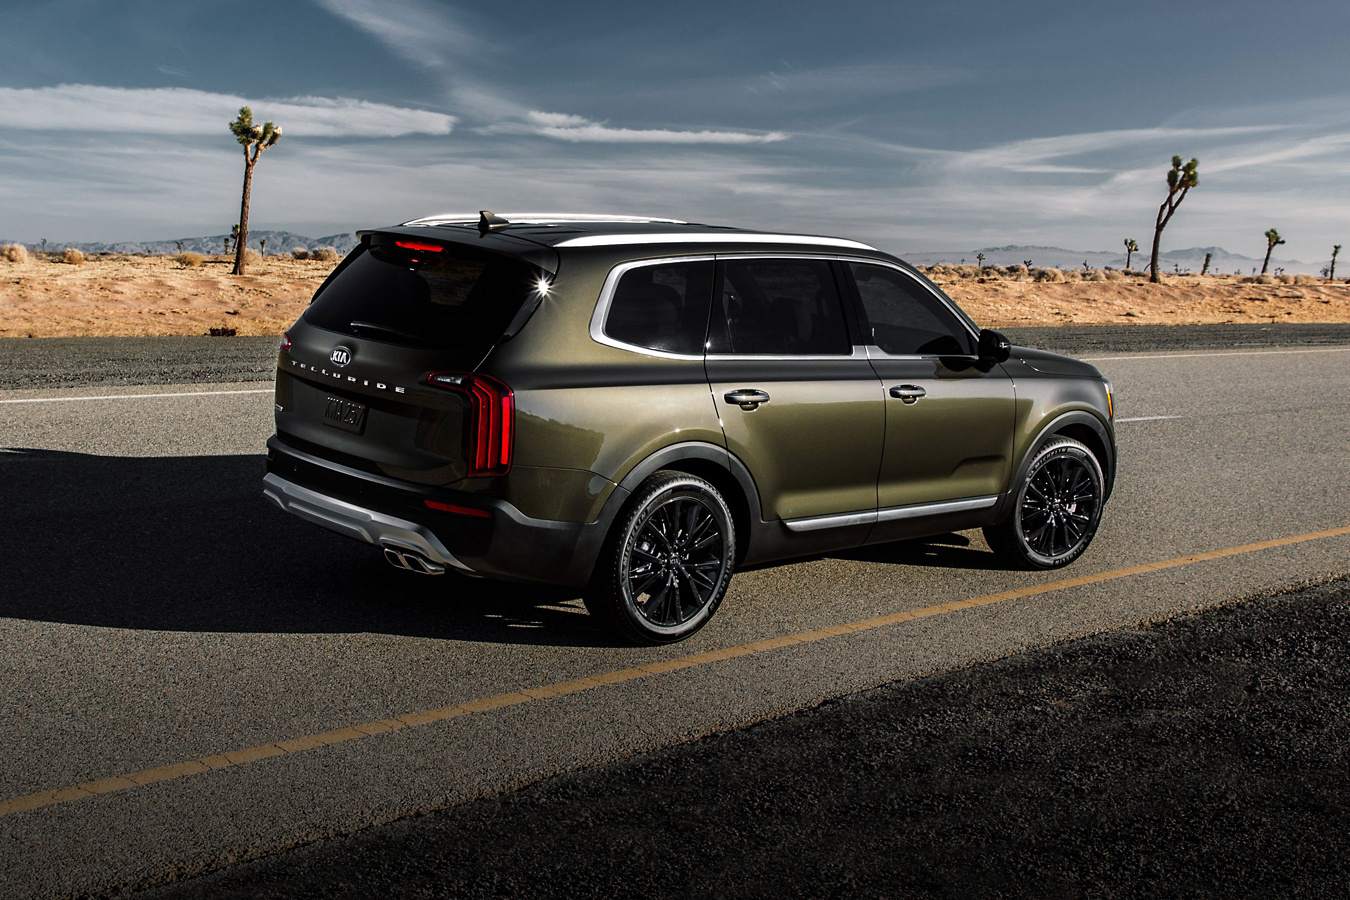 The Kia Telluride is a Game Changer